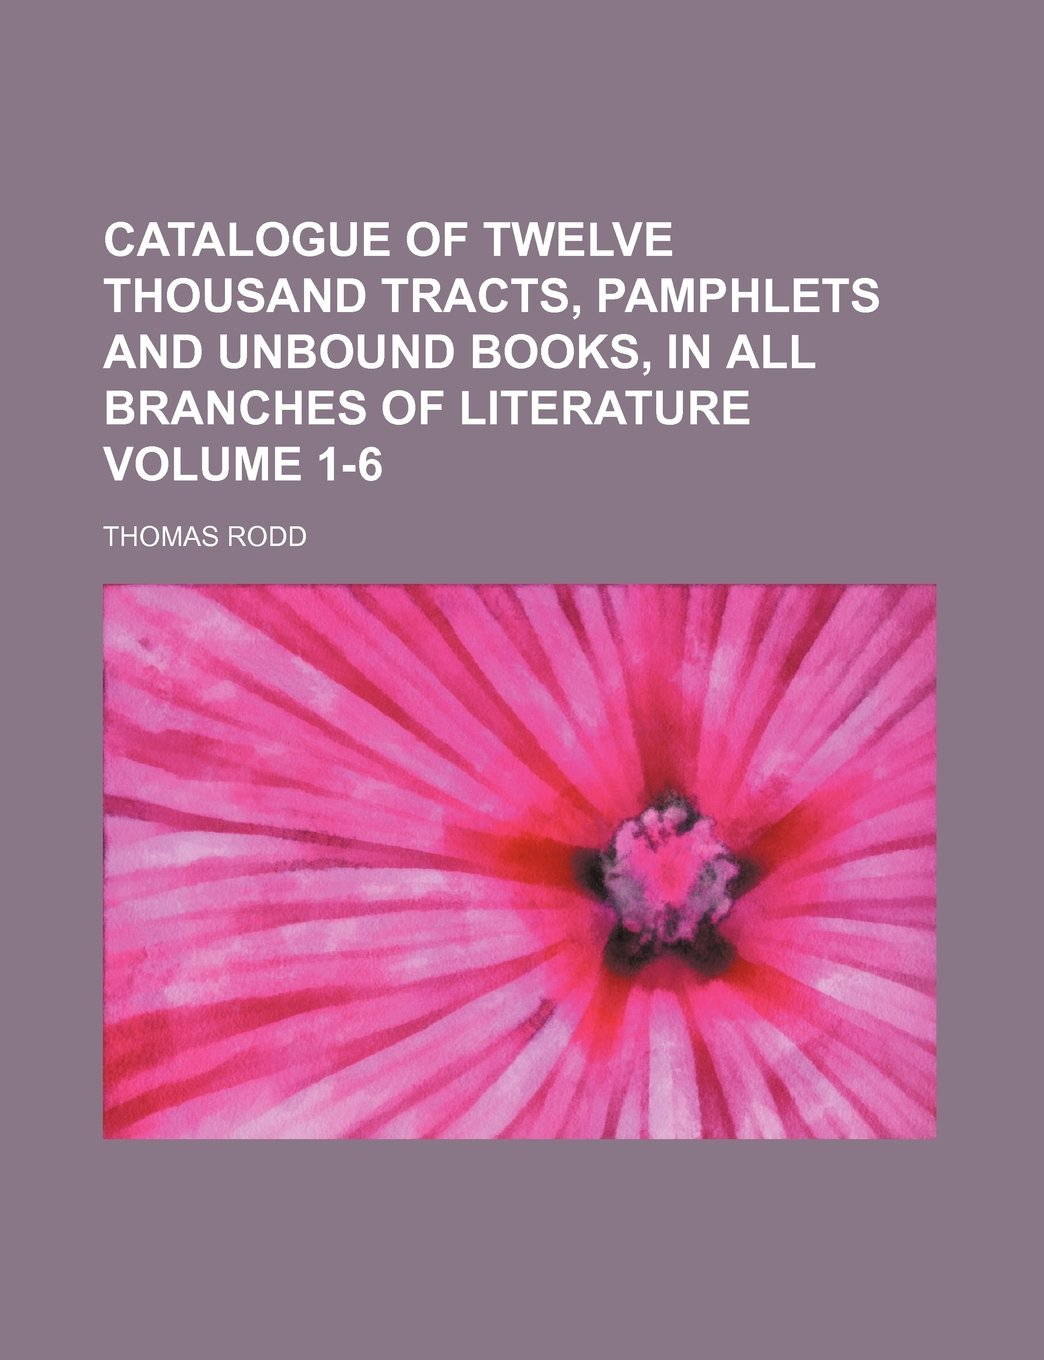 Catalogue of twelve thousand tracts, pamphlets and unbound books, in all branches of literature Volume 1-6 PDF